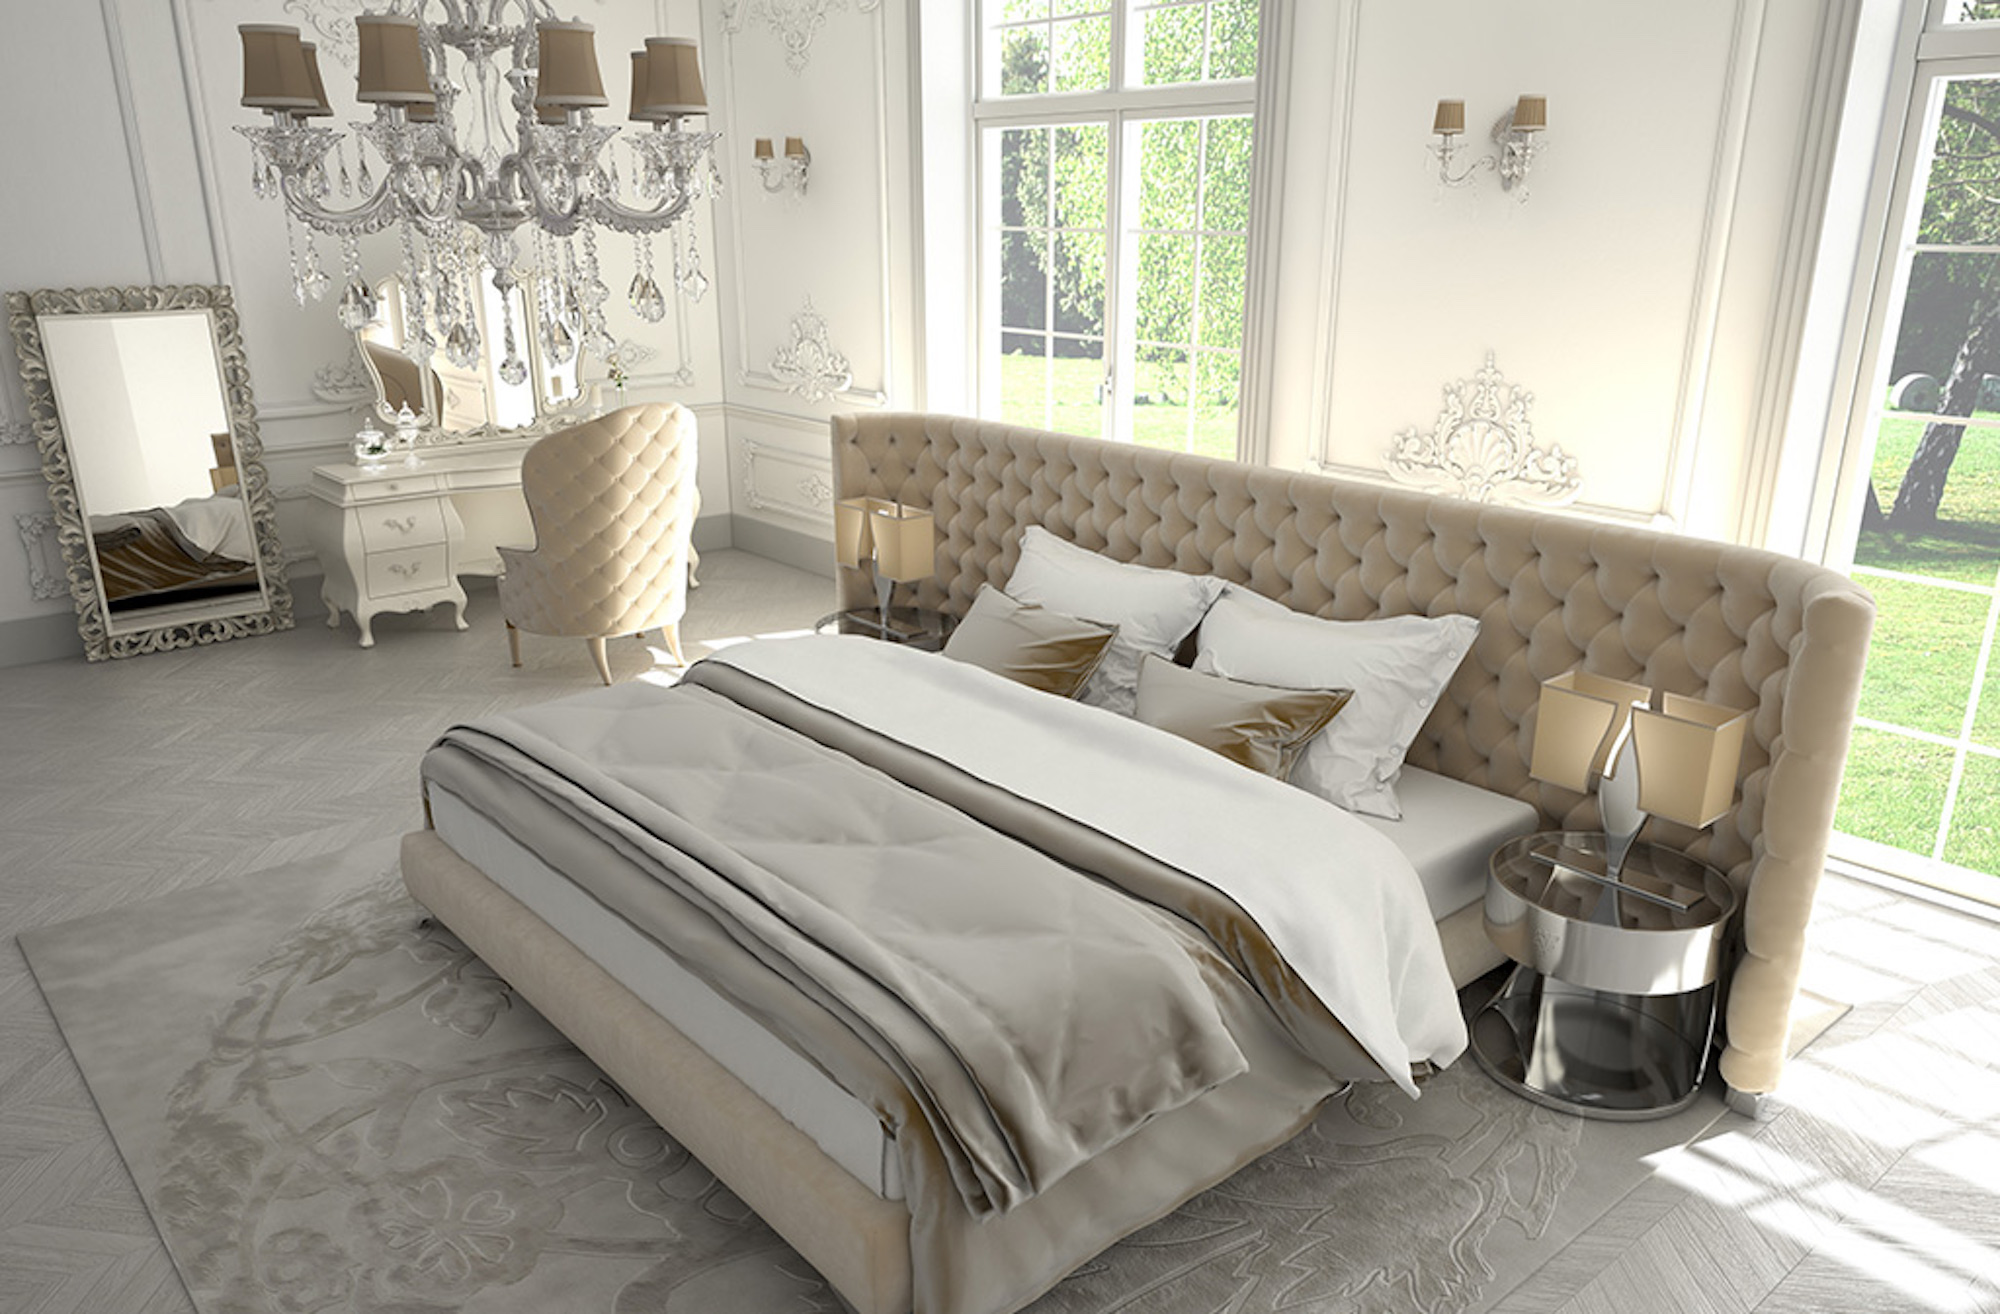 How to create a luxurious bedroom in your home | Home Interior | Elle Blonde Luxury Lifestyle Destination Blog